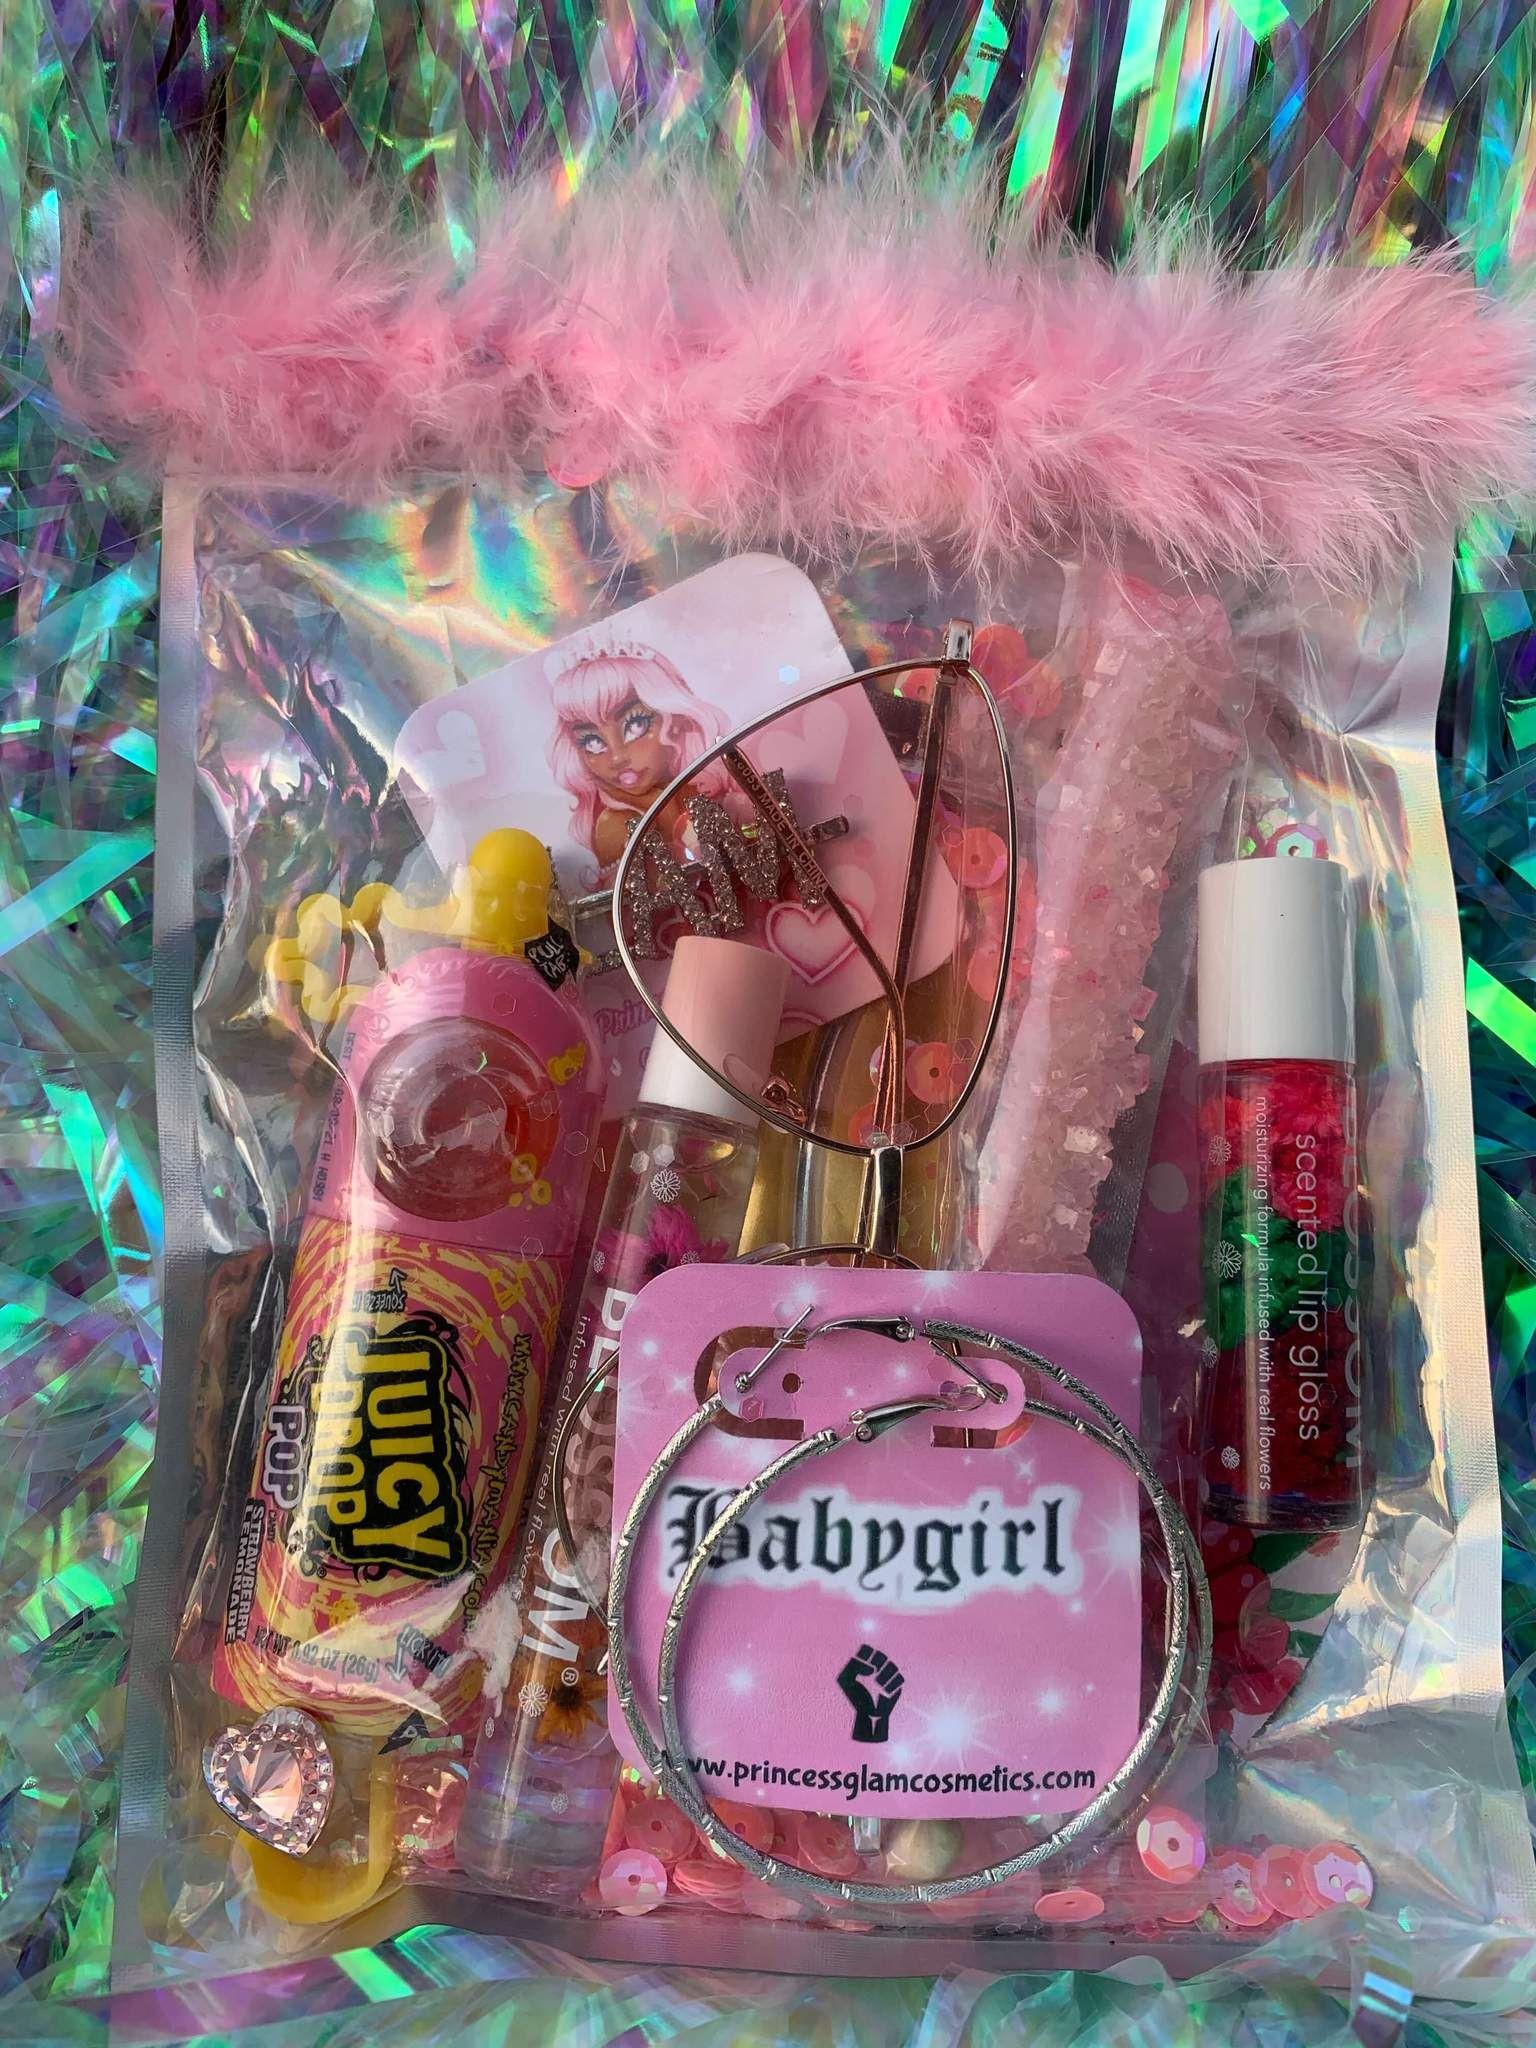 Baby girl glam pack in 2020 lip gloss beauty business